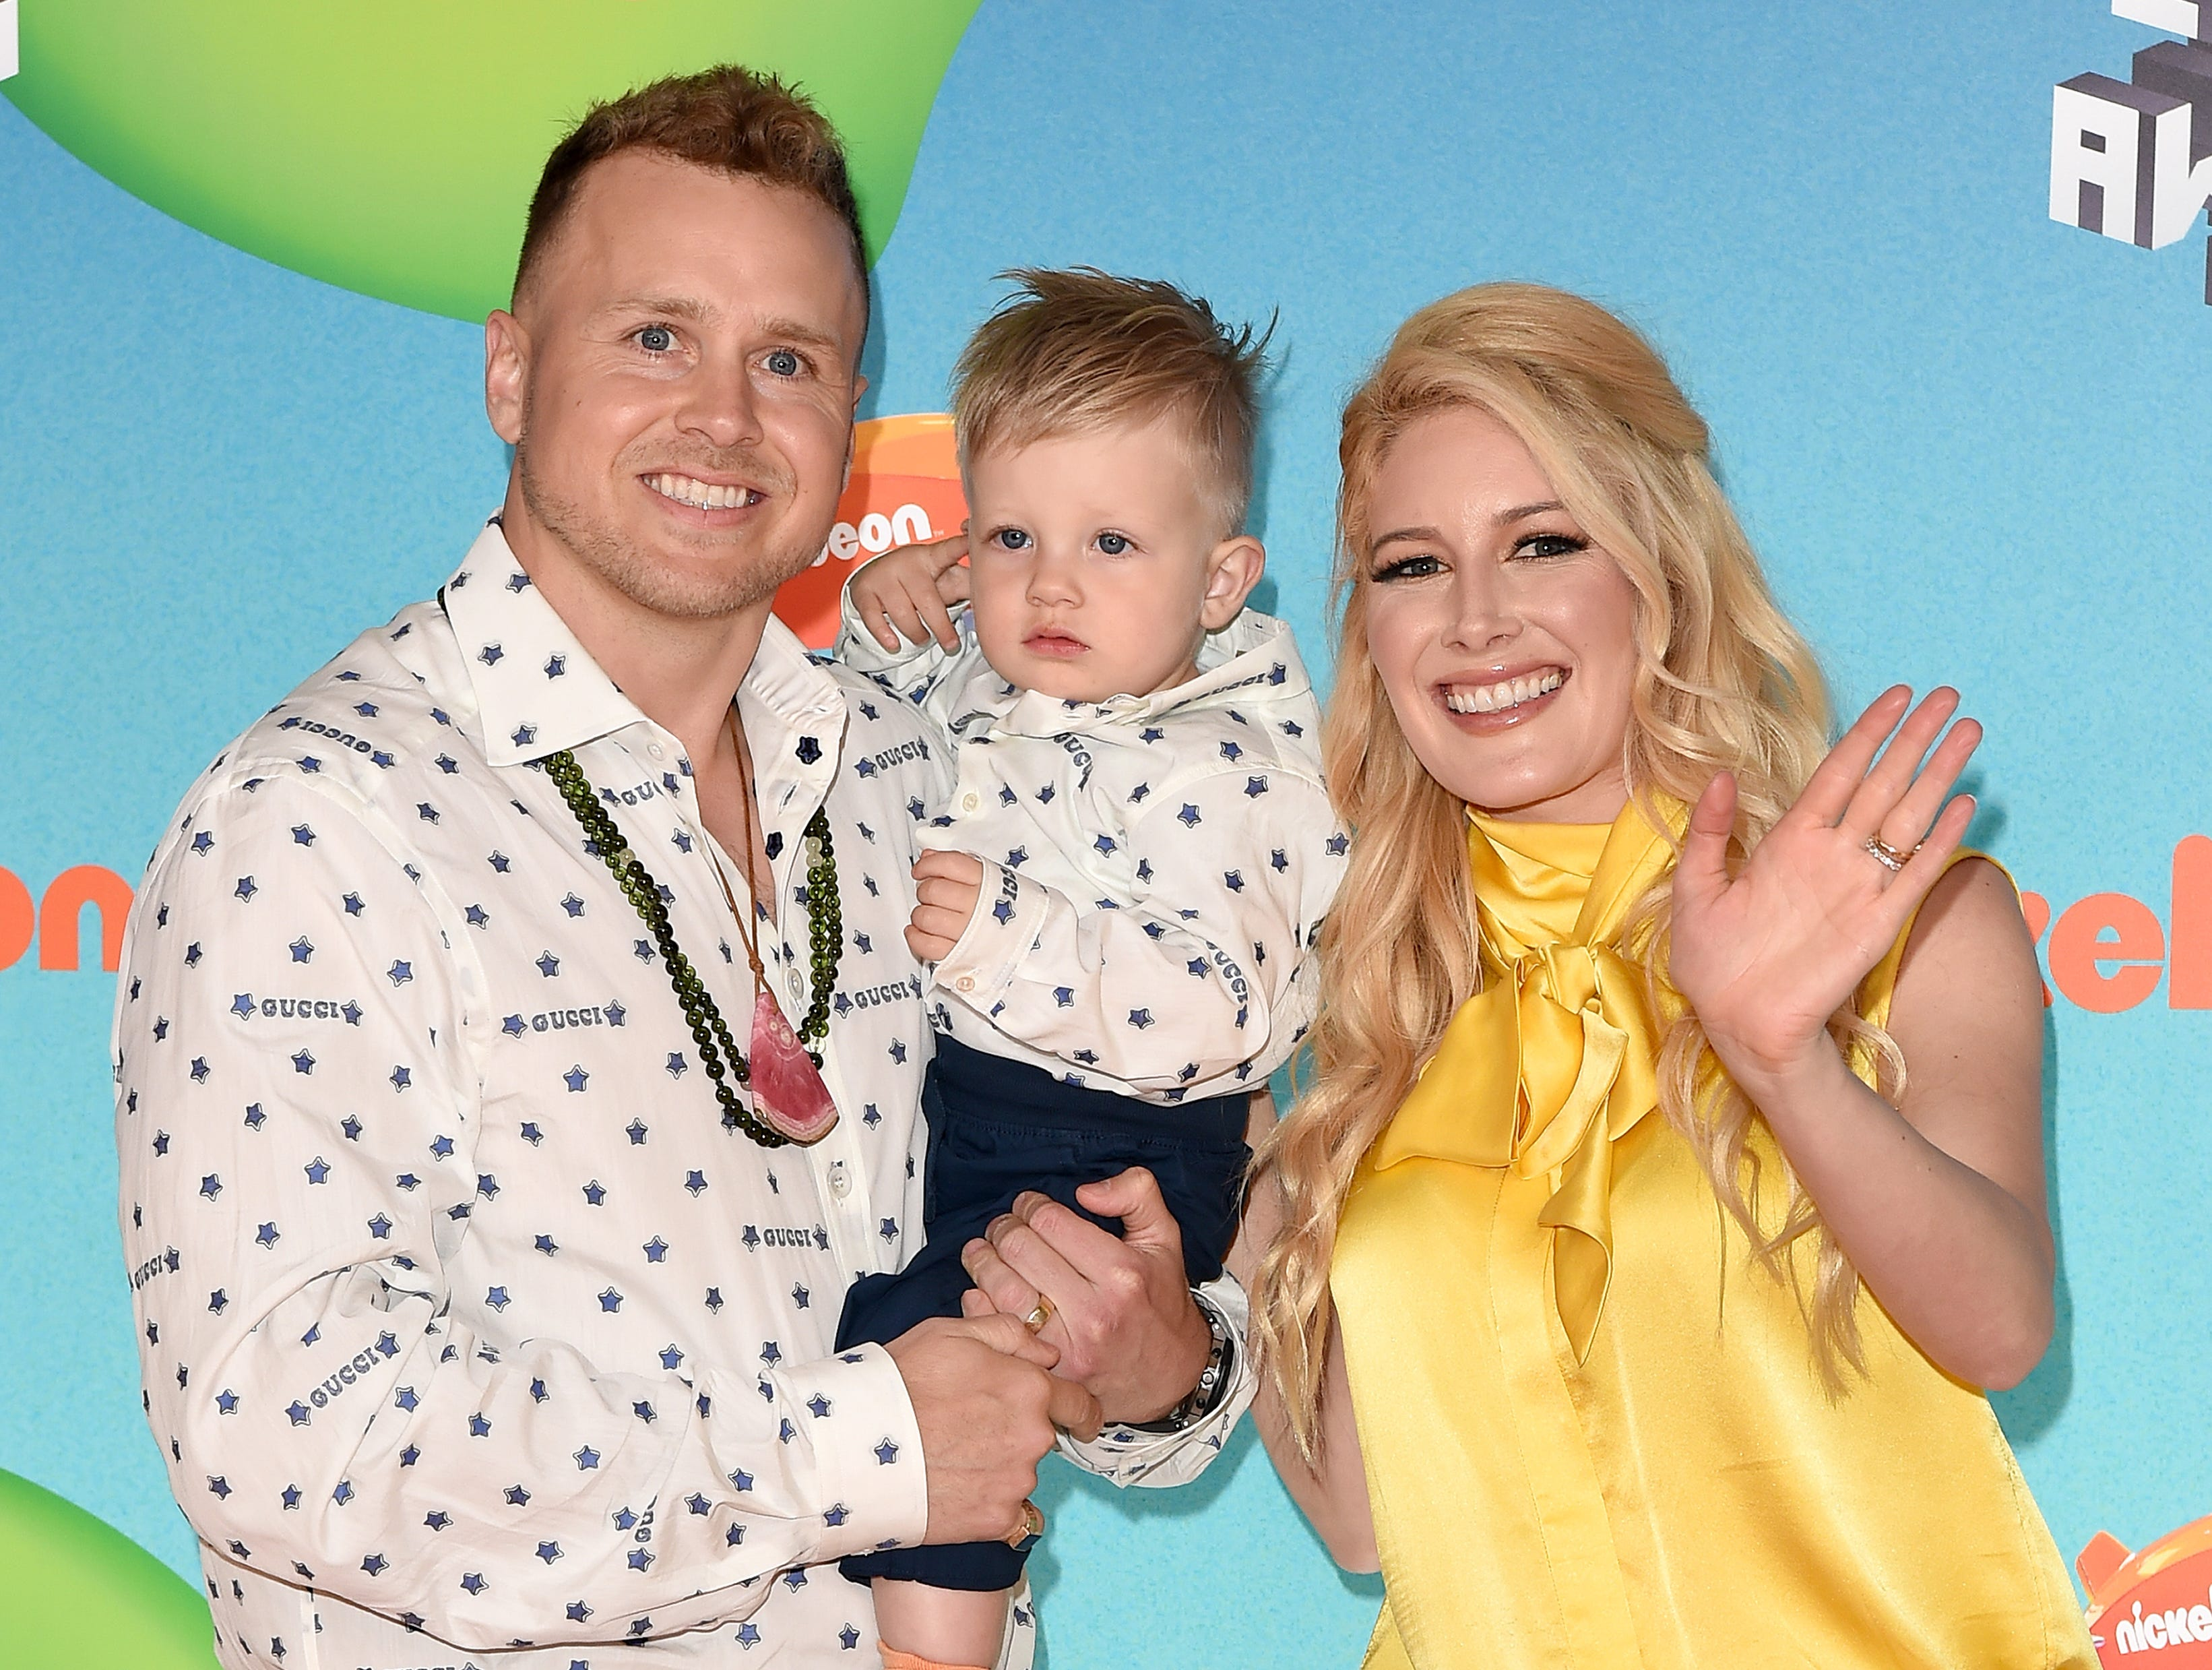 LOS ANGELES, CALIFORNIA - MARCH 23: (L-R) Spencer Pratt, Gunner Stone, and Heidi Montag attend Nickelodeon's 2019 Kids' Choice Awards at Galen Center on March 23, 2019 in Los Angeles, California. (Photo by Axelle/Bauer-Griffin/FilmMagic) ORG XMIT: 775314636 ORIG FILE ID: 1137876151